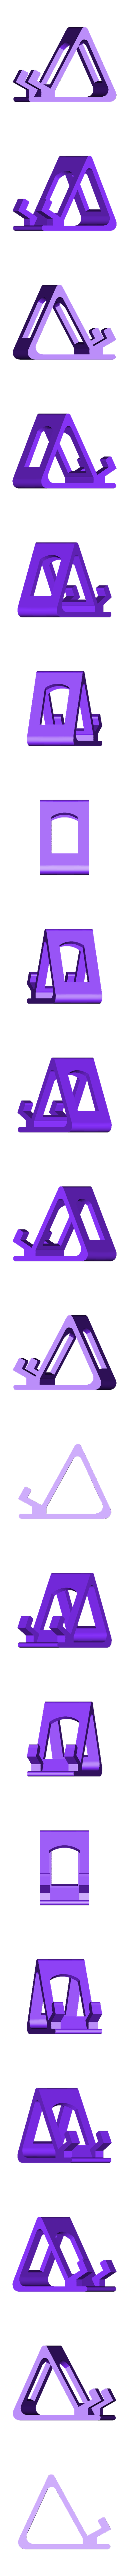 Support téléphone mobile.stl Download free STL file Mobile phone support • Object to 3D print, jttassin